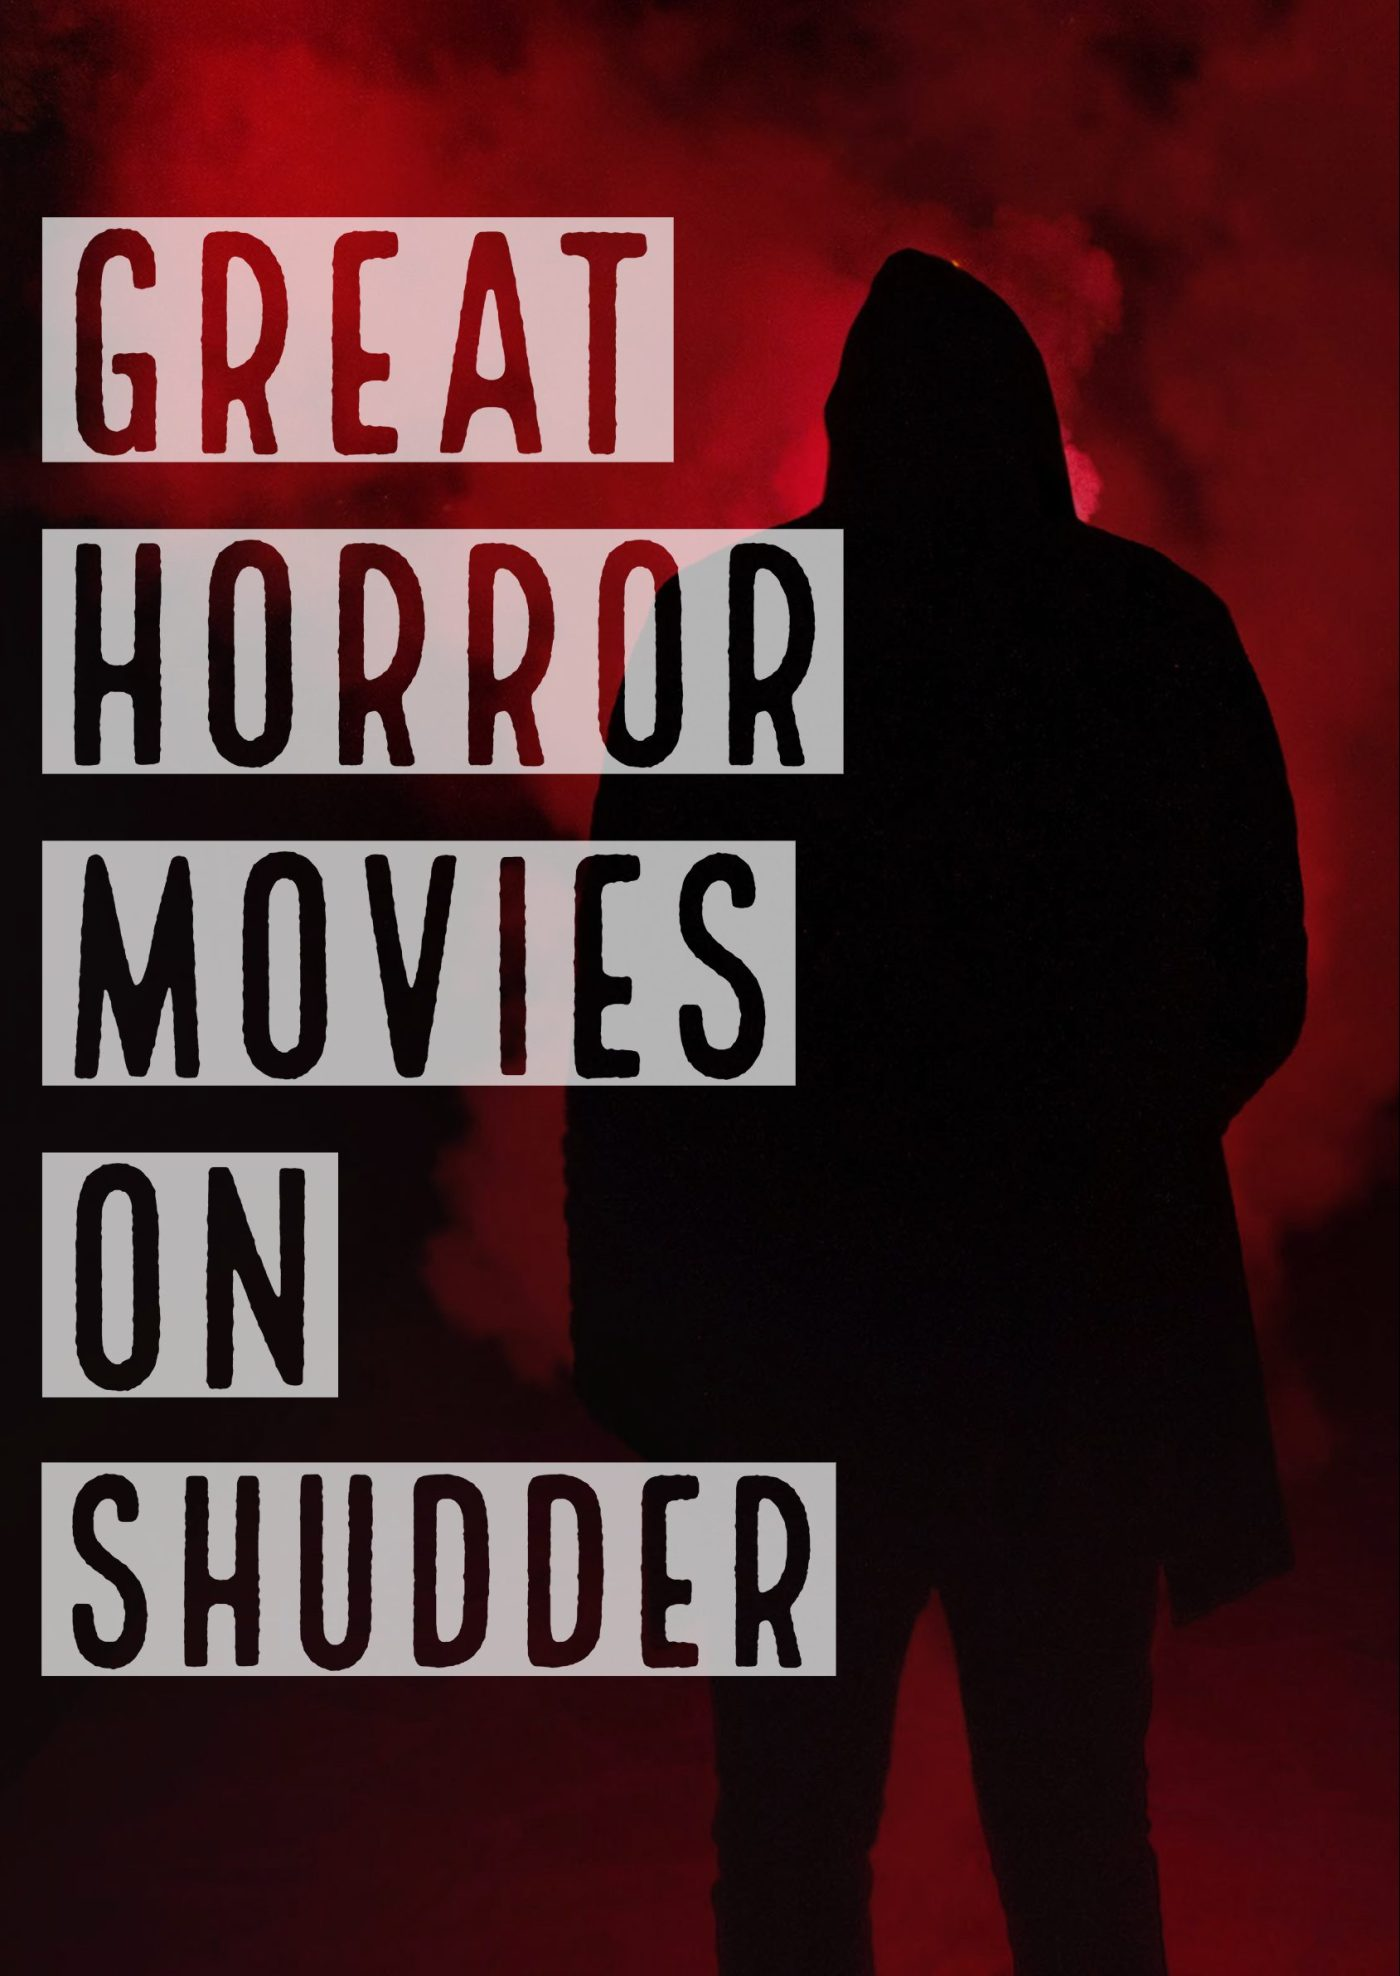 5 Great Horror Movies on Shudder